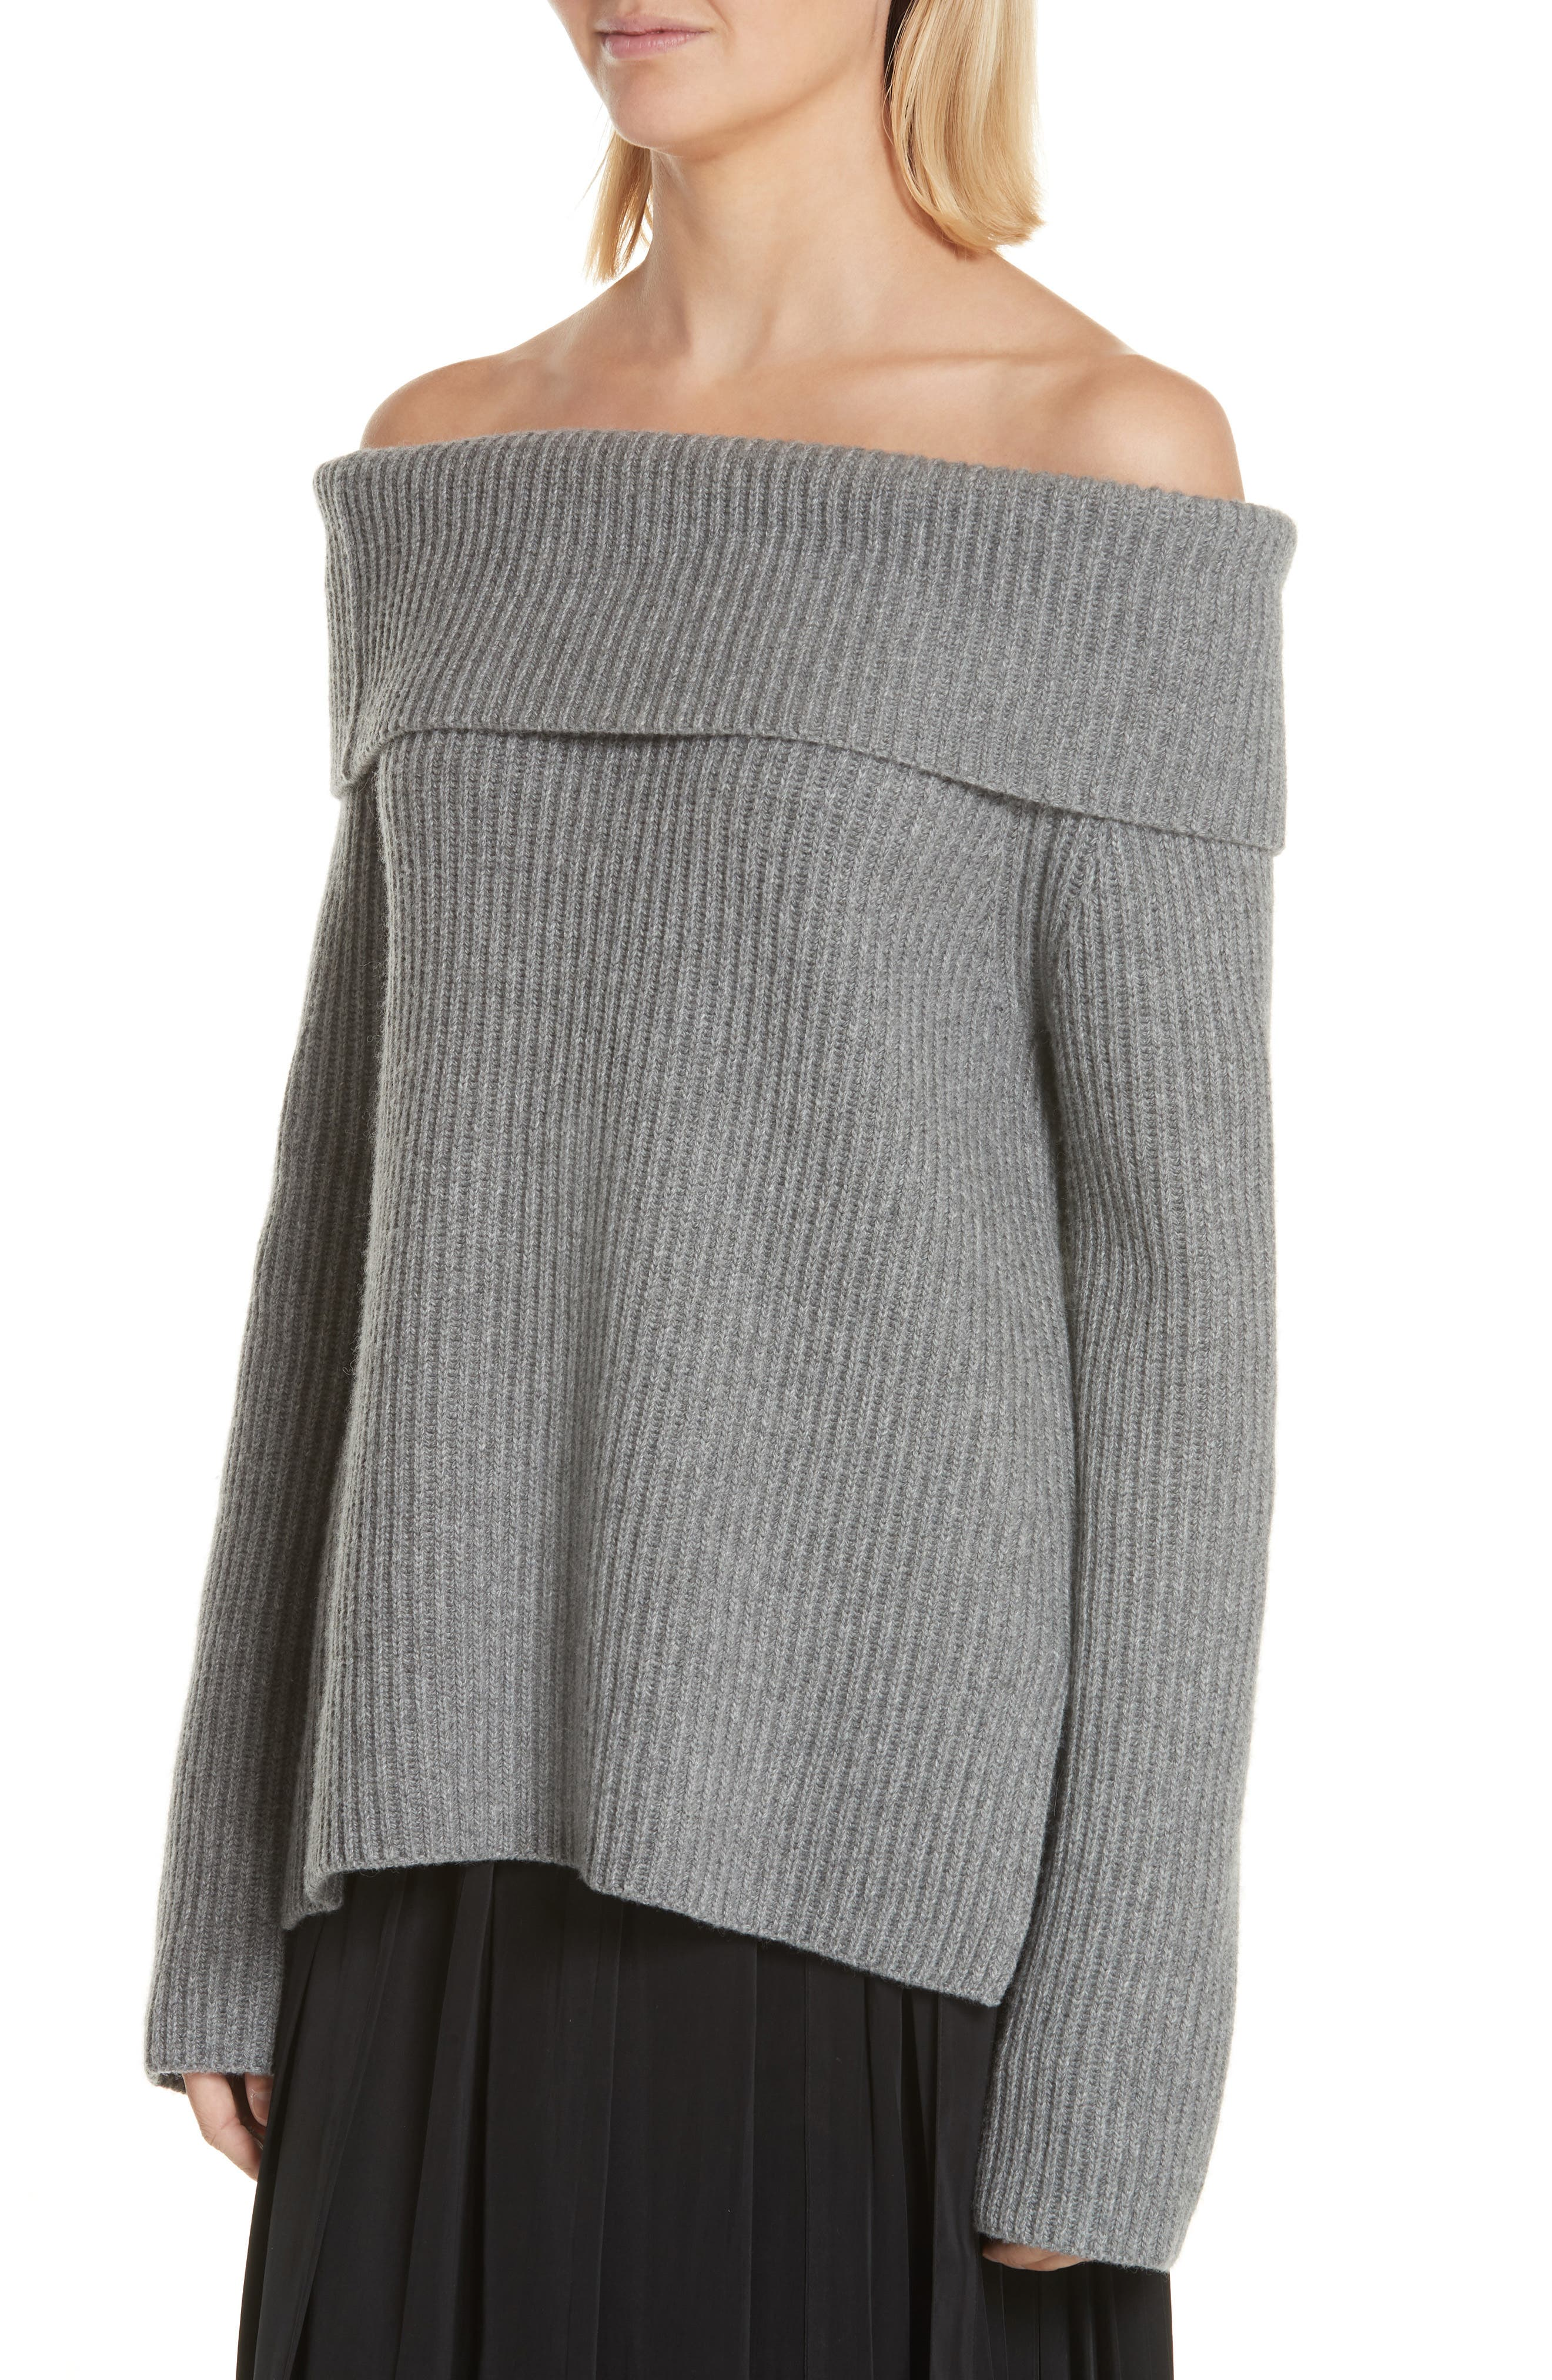 ROBERT RODRIGUEZ,                             Off the Shoulder Sweater,                             Alternate thumbnail 4, color,                             020